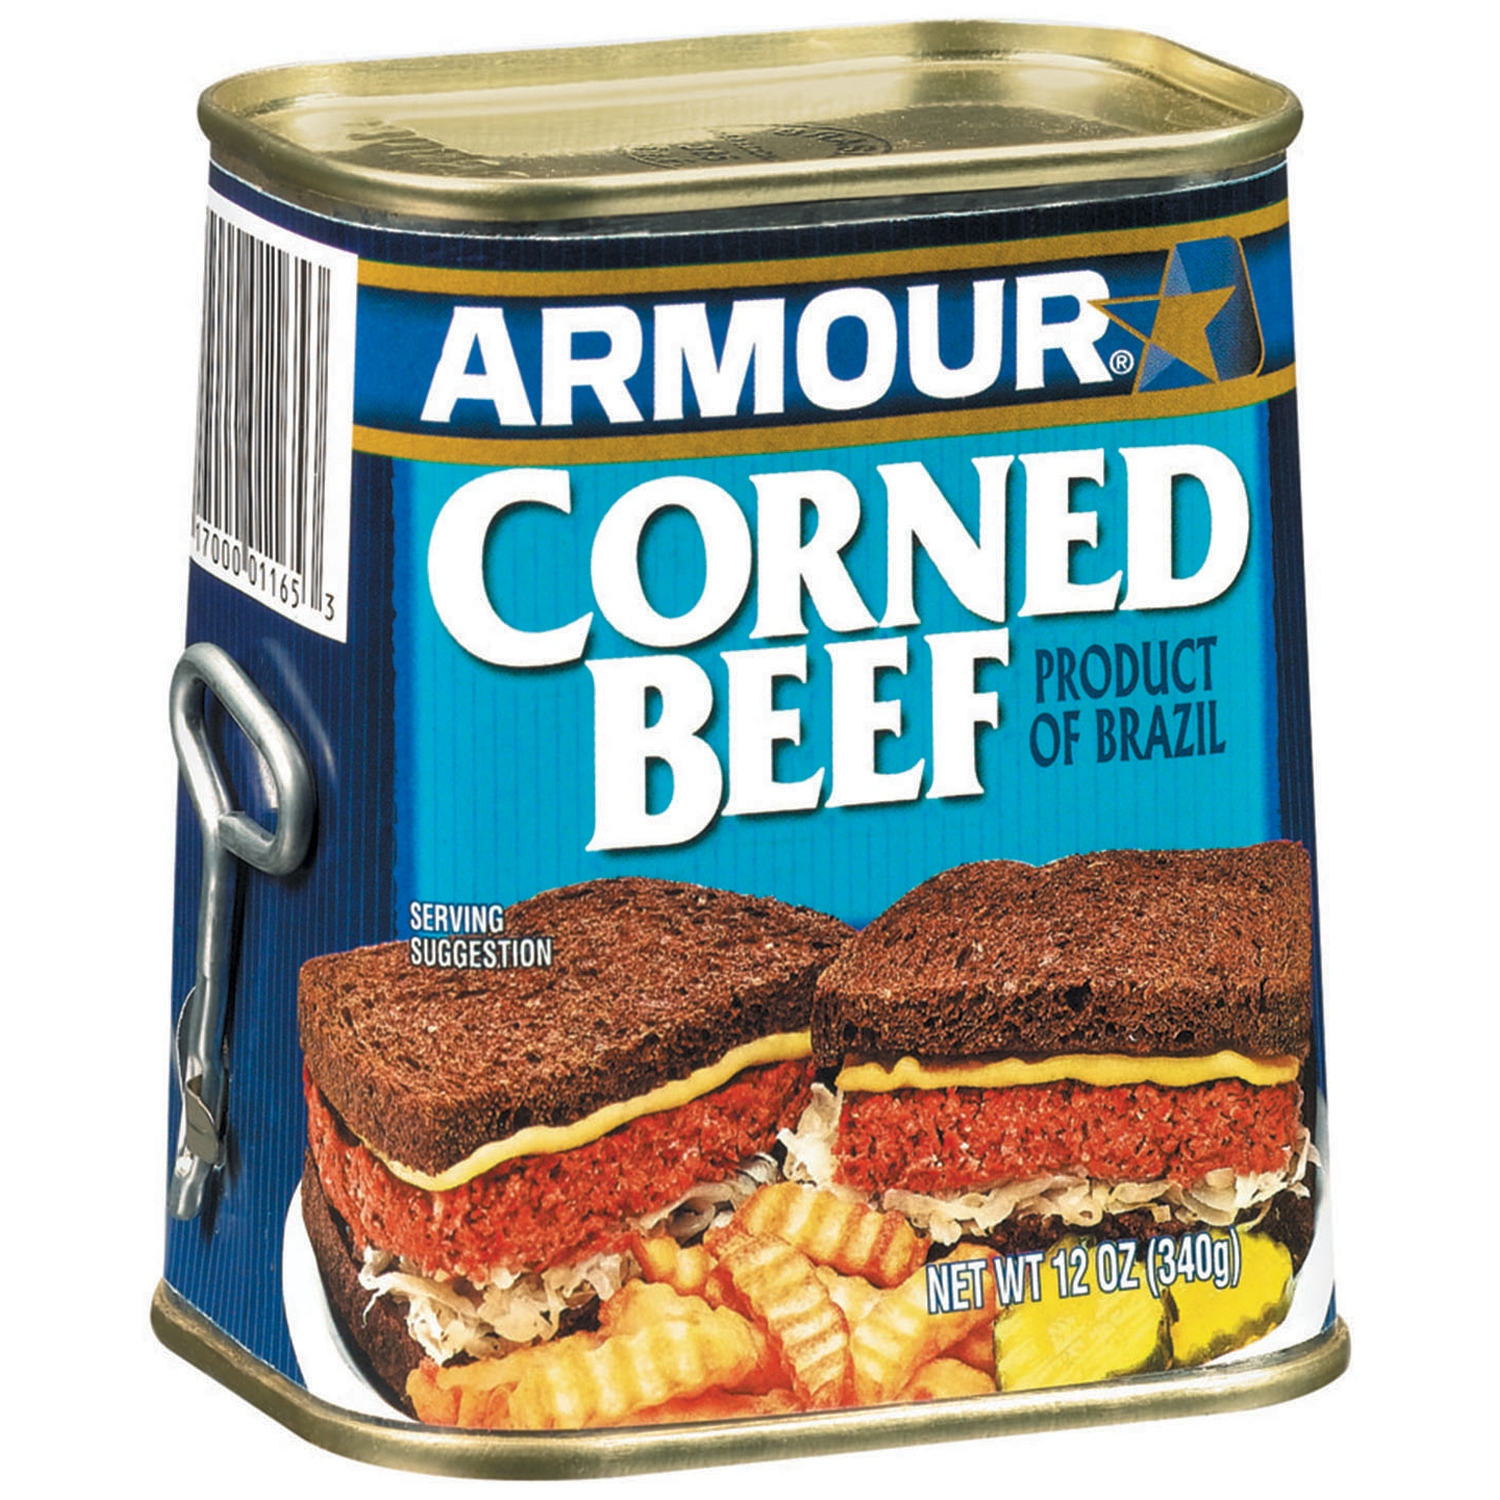 Armour Corned Beef 12 Oz Can by Pinnacle Foods Group, Llc